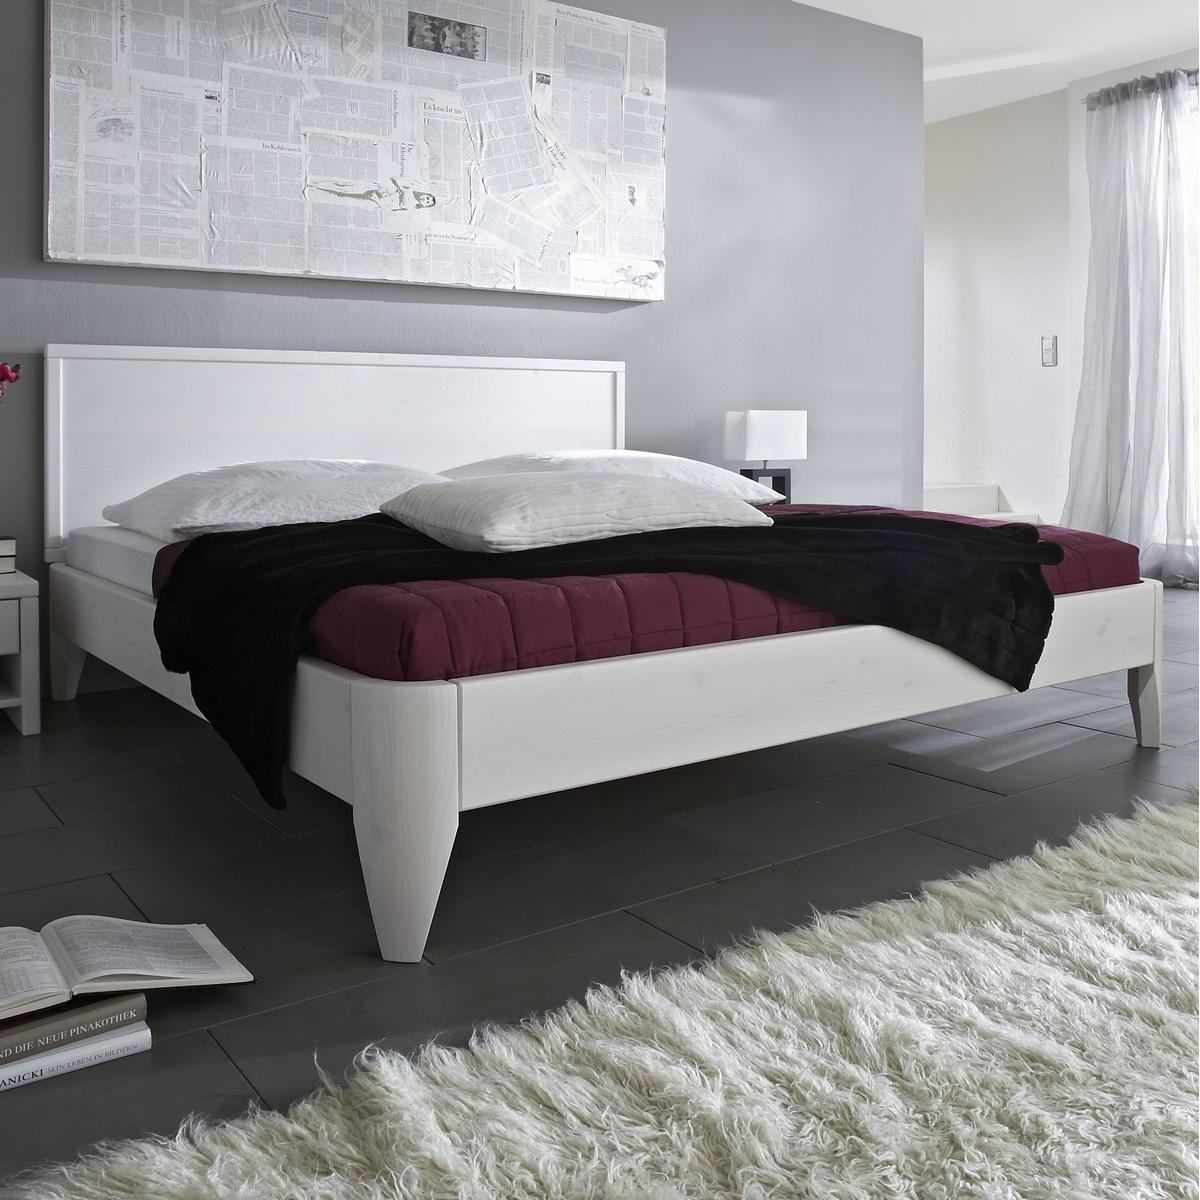 massivholz bett 160x200 easy sleep kiefer massiv wei. Black Bedroom Furniture Sets. Home Design Ideas